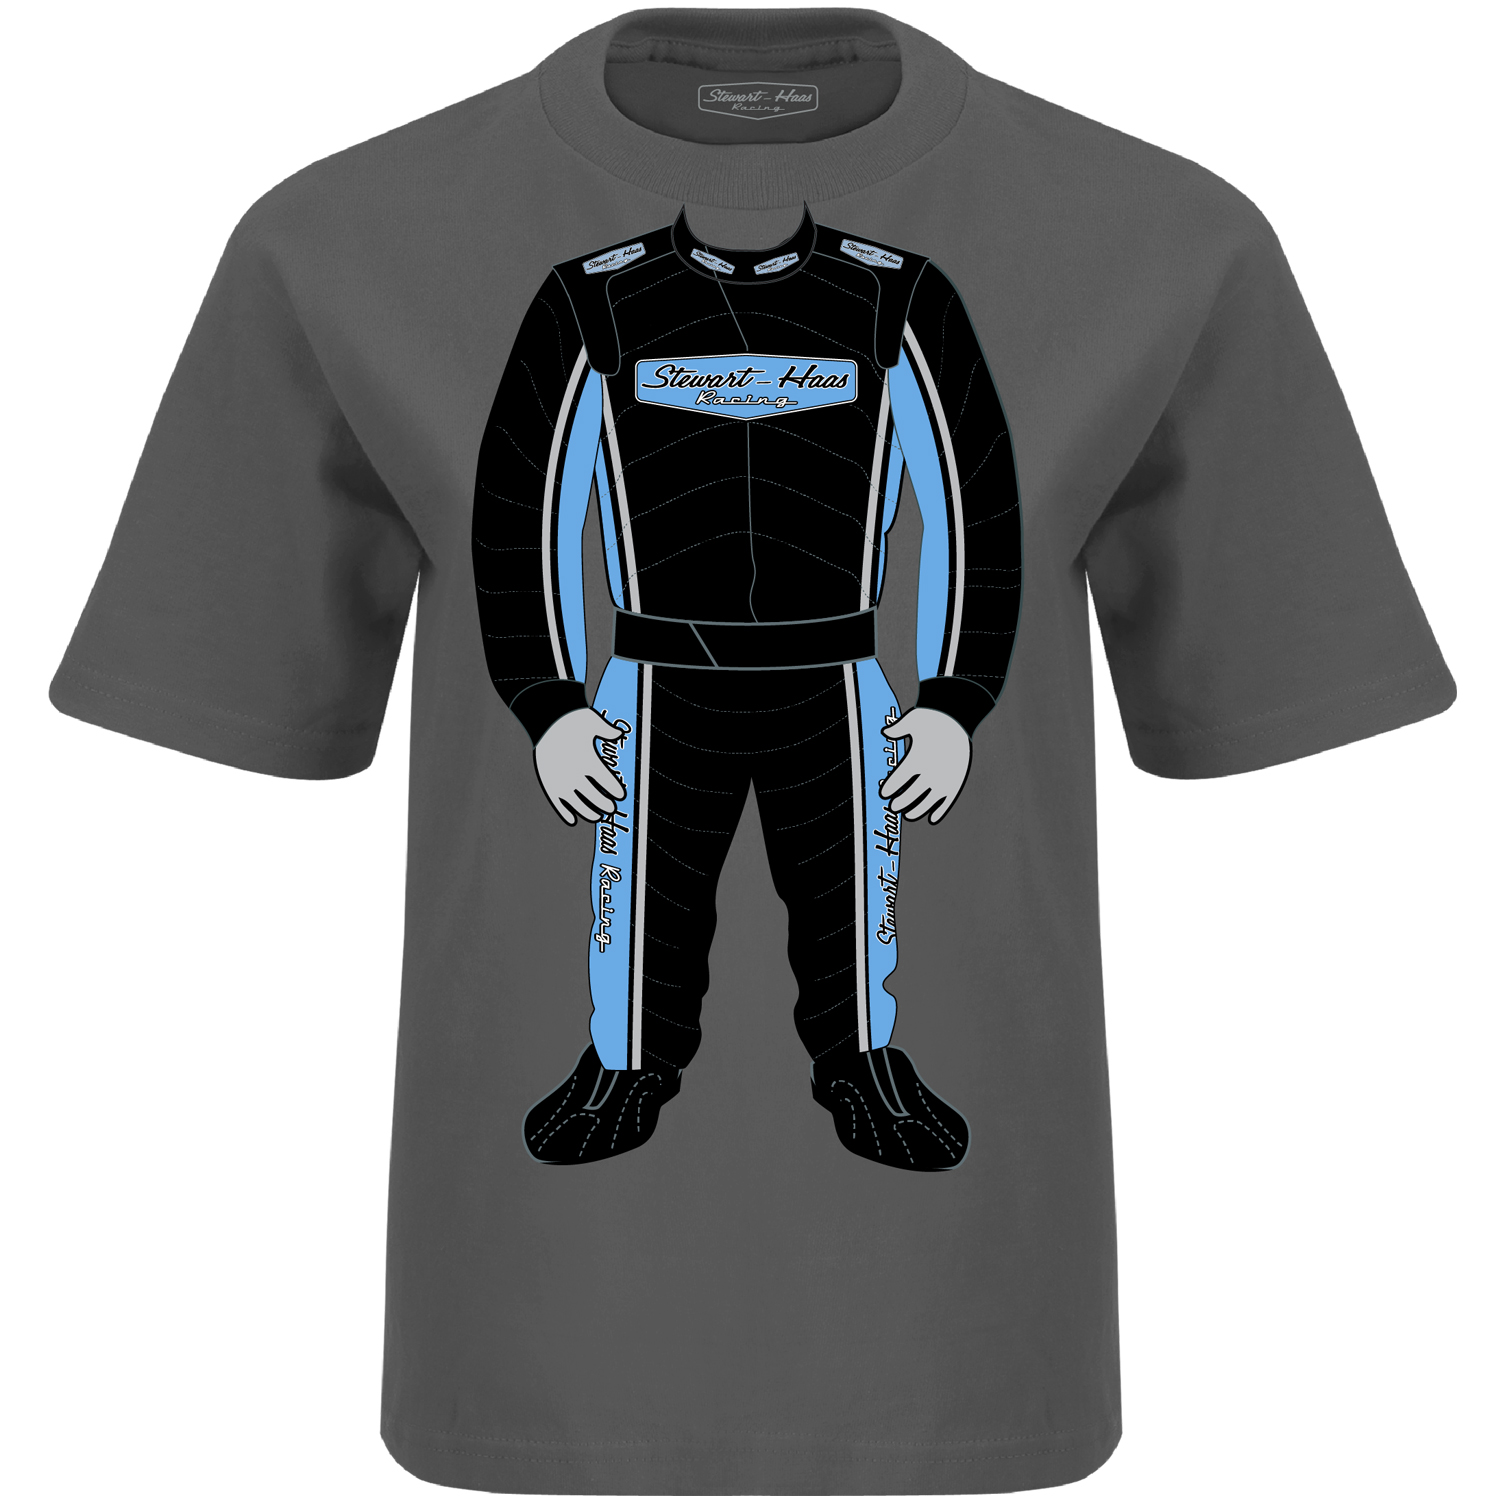 Exclusive Stewart-Haas Racing Toddler Driver Uniform Tee